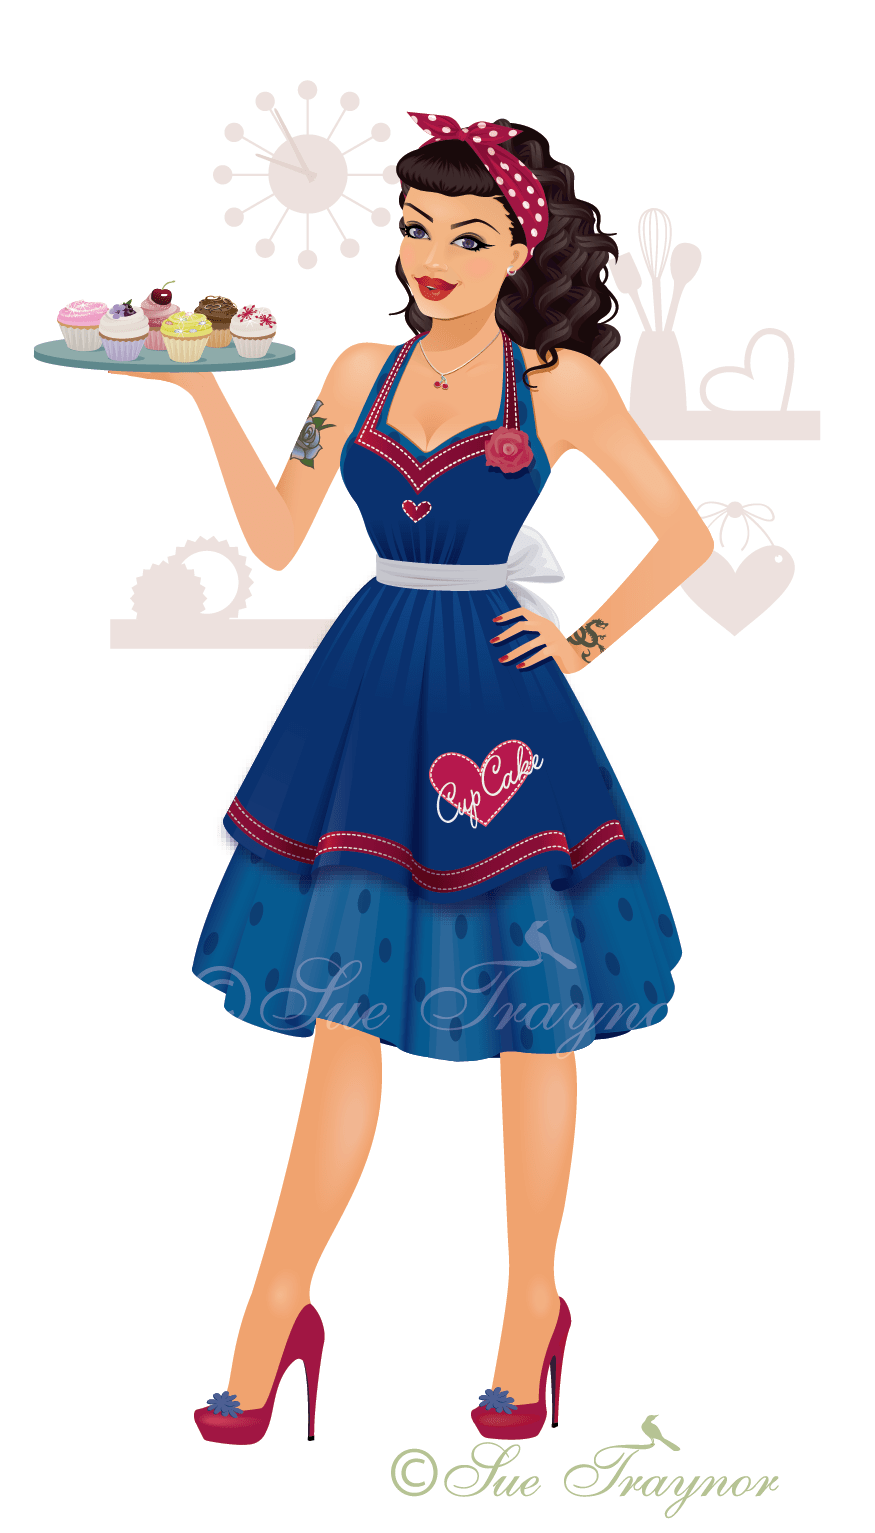 Cup Cake Pin-up Girl